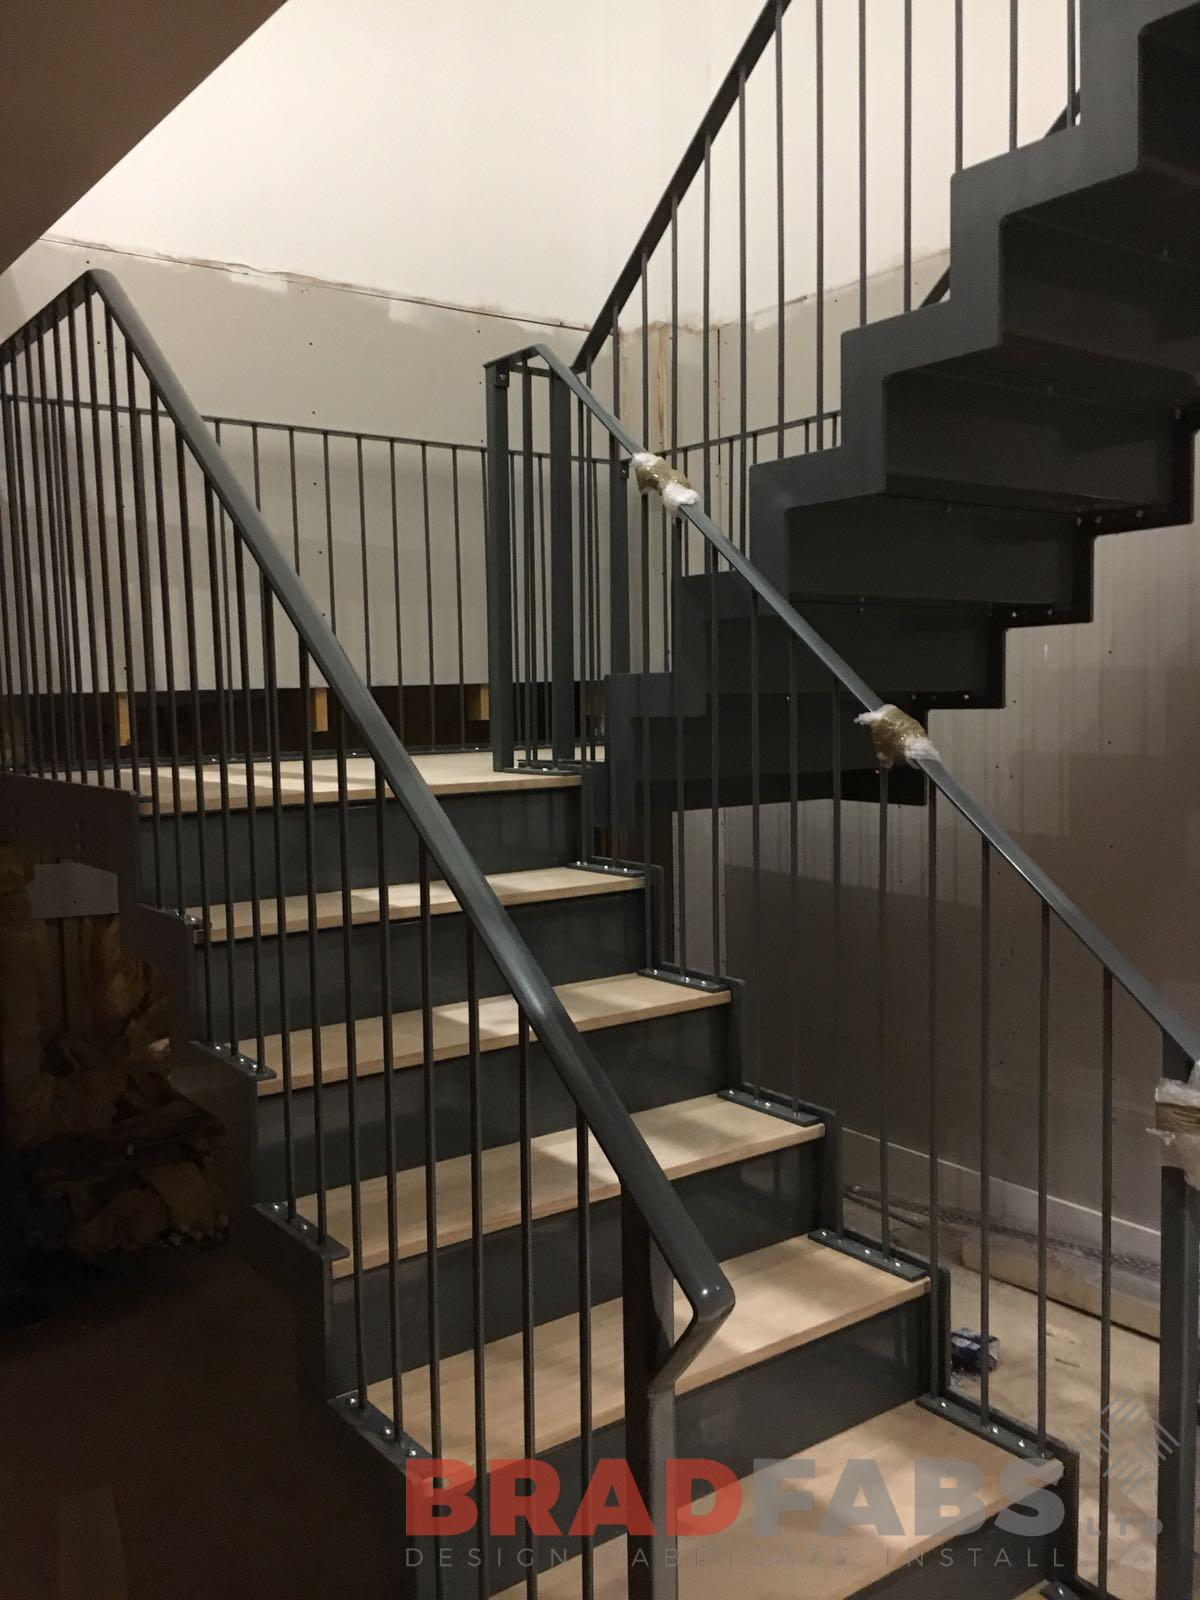 Bradfabs, bespoke cortex flat bar handrail with vertical bar balustrade for a domestic property